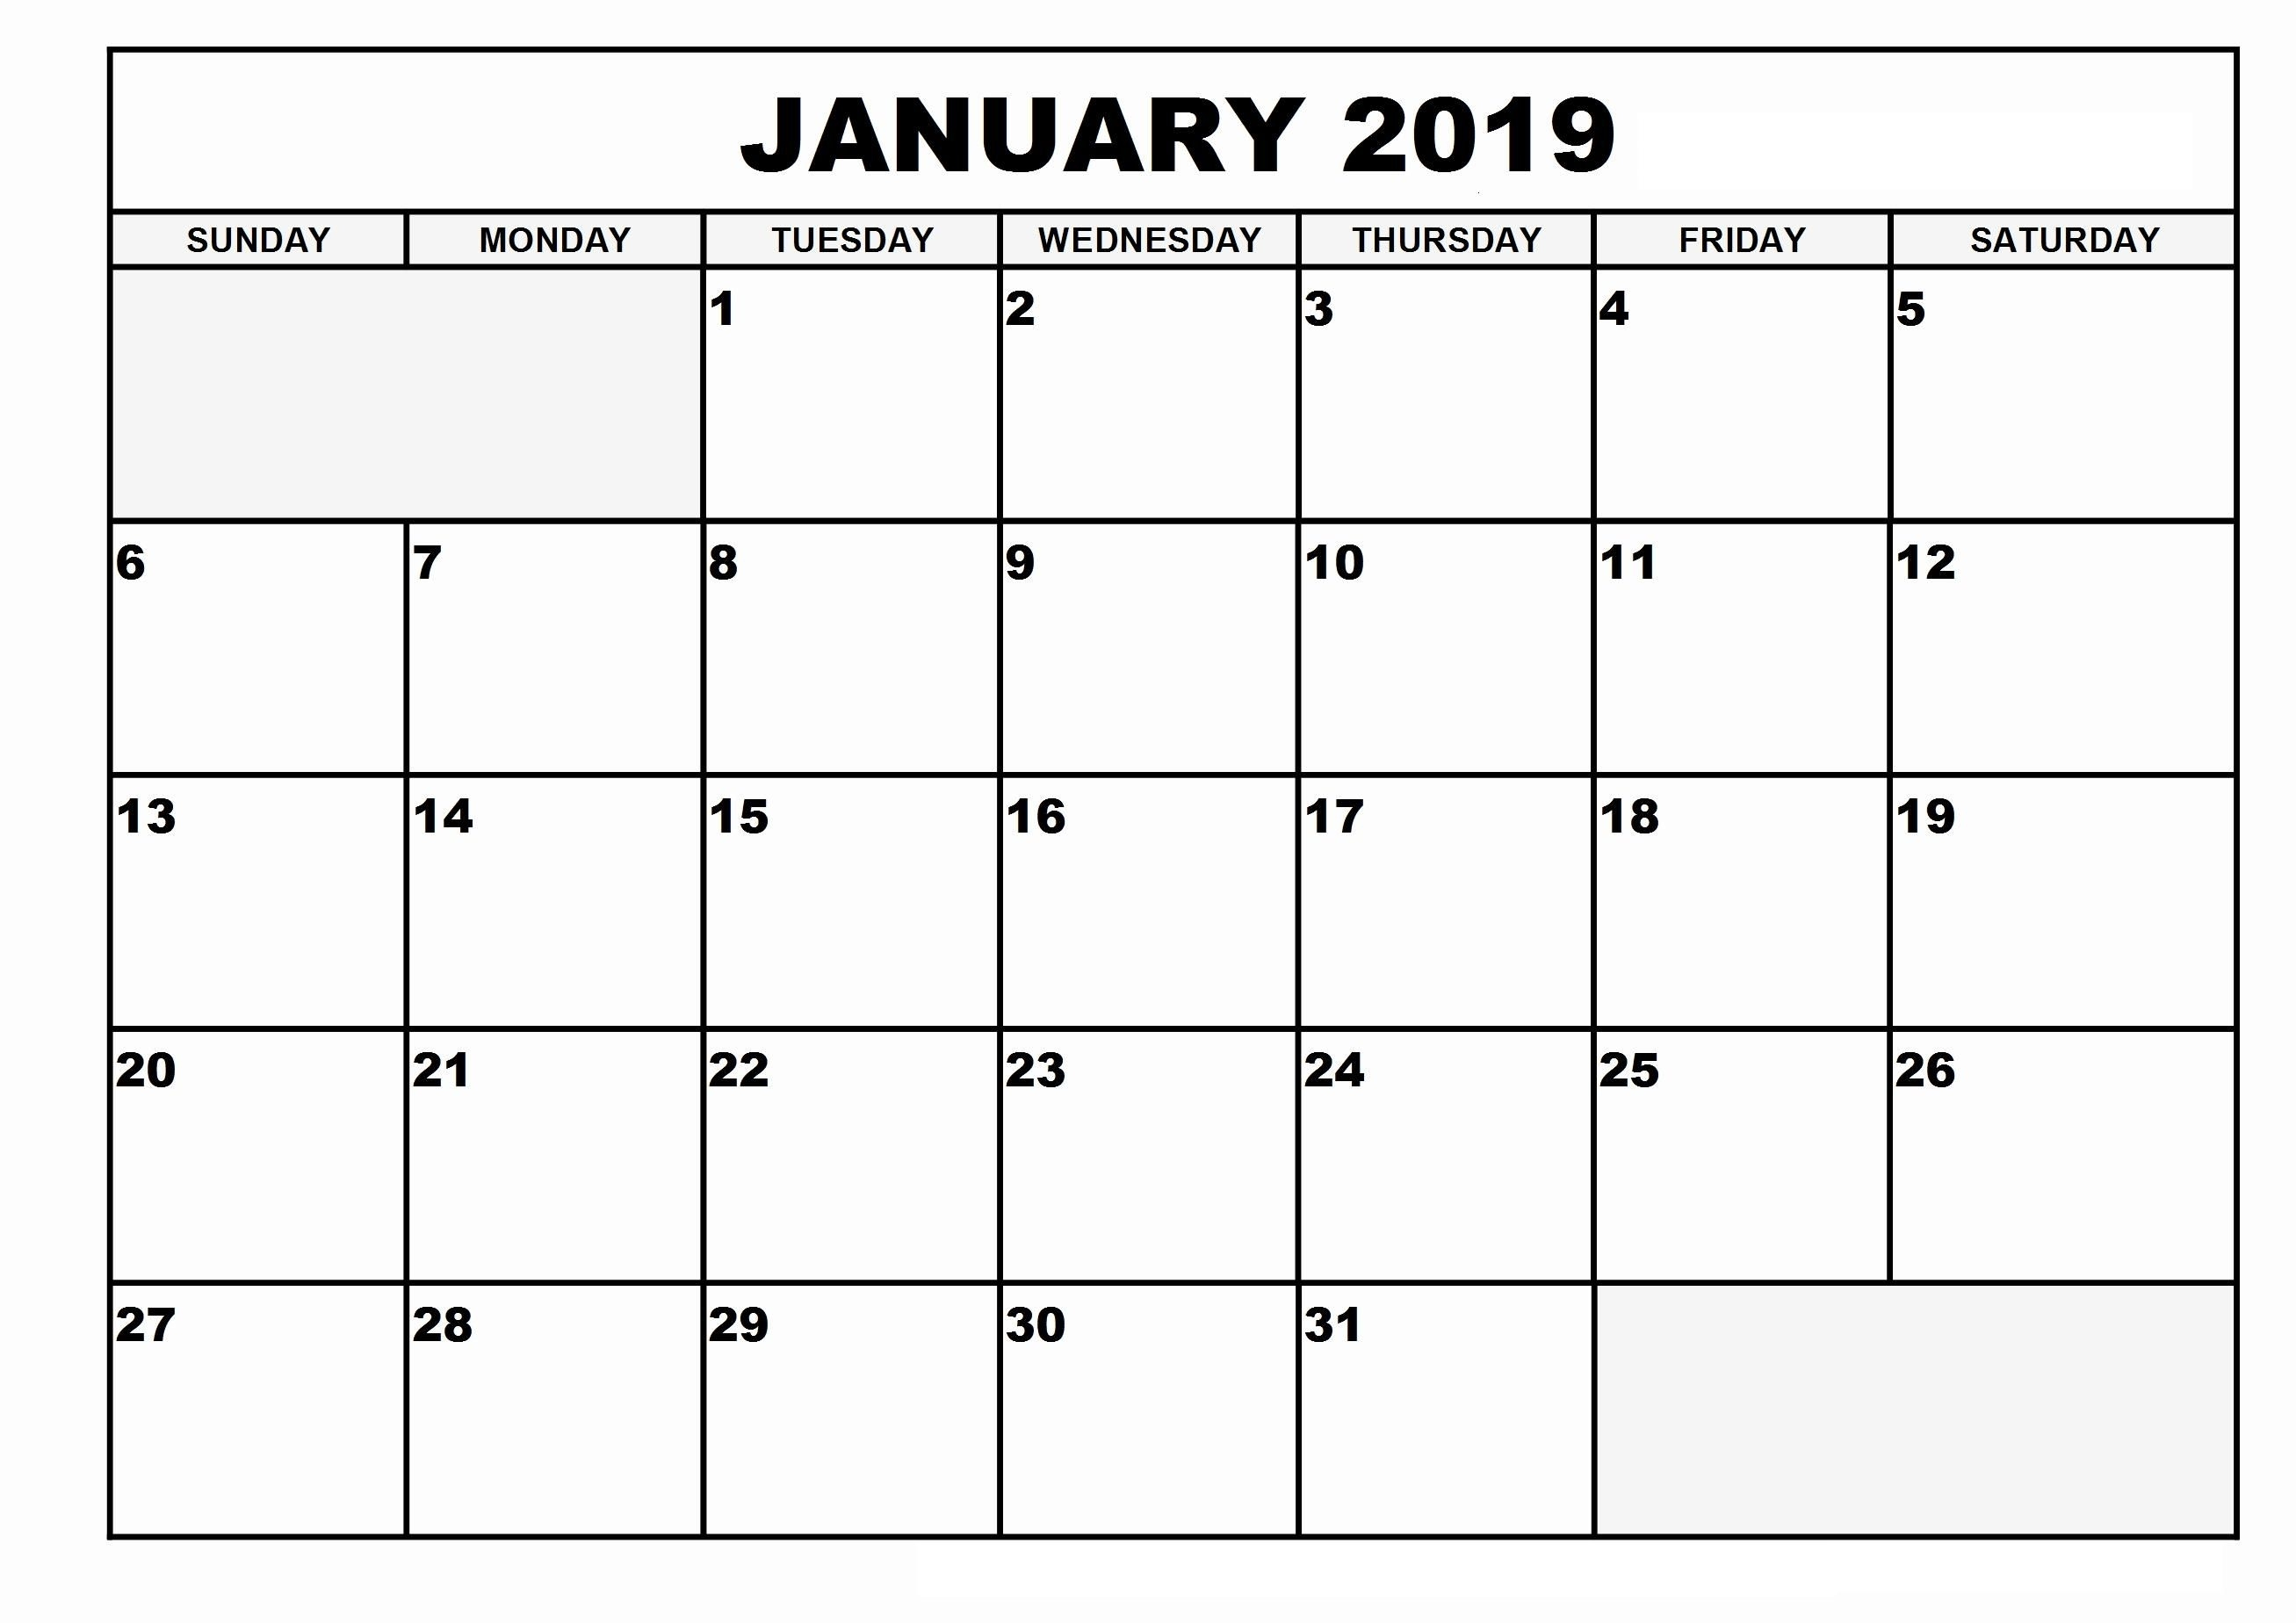 January 2019 Calendar Template Dates Printable #january2019